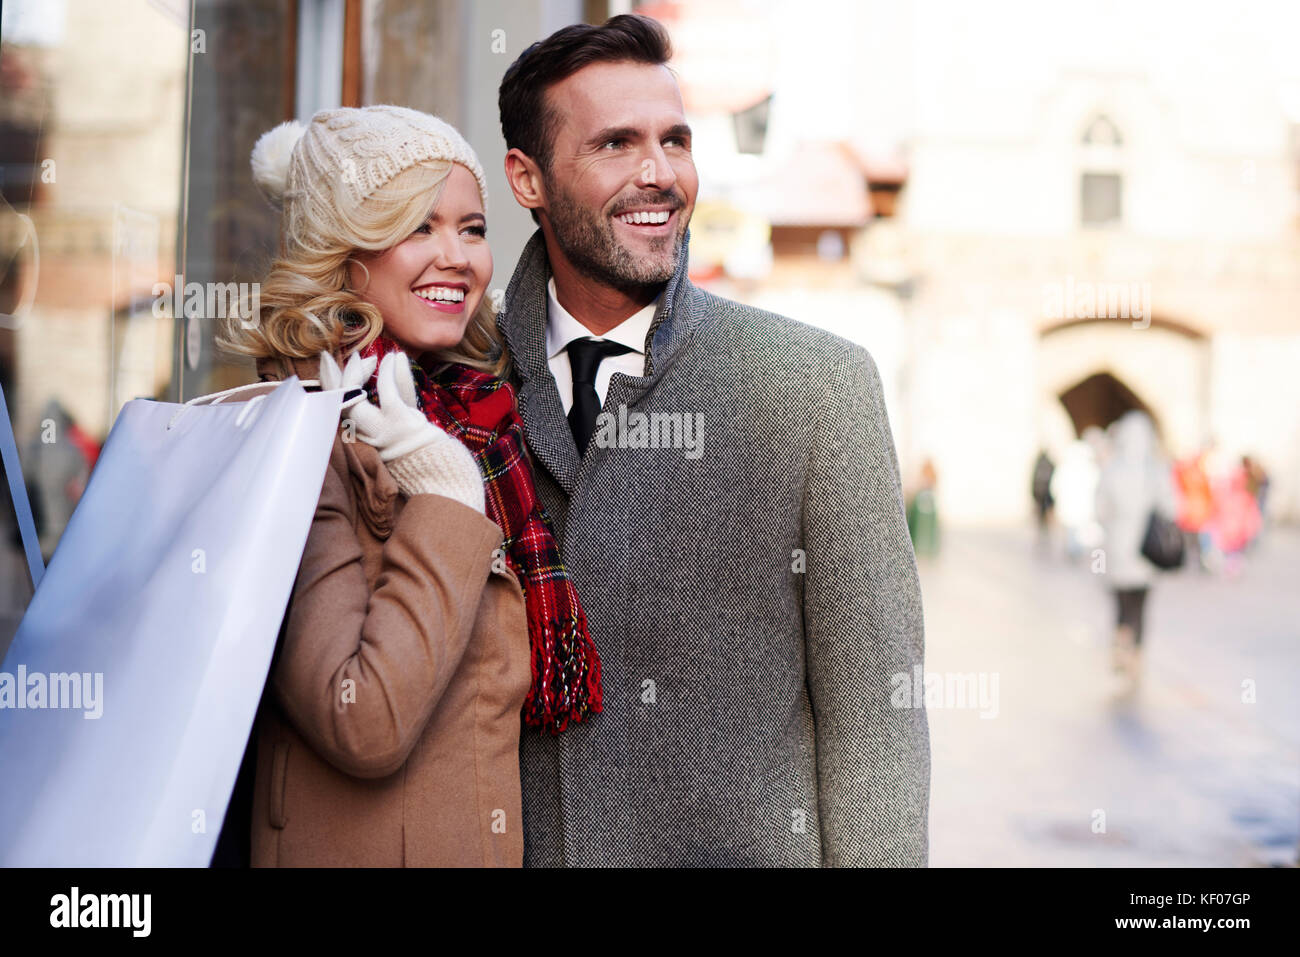 Couple spending time together on shopping - Stock Image